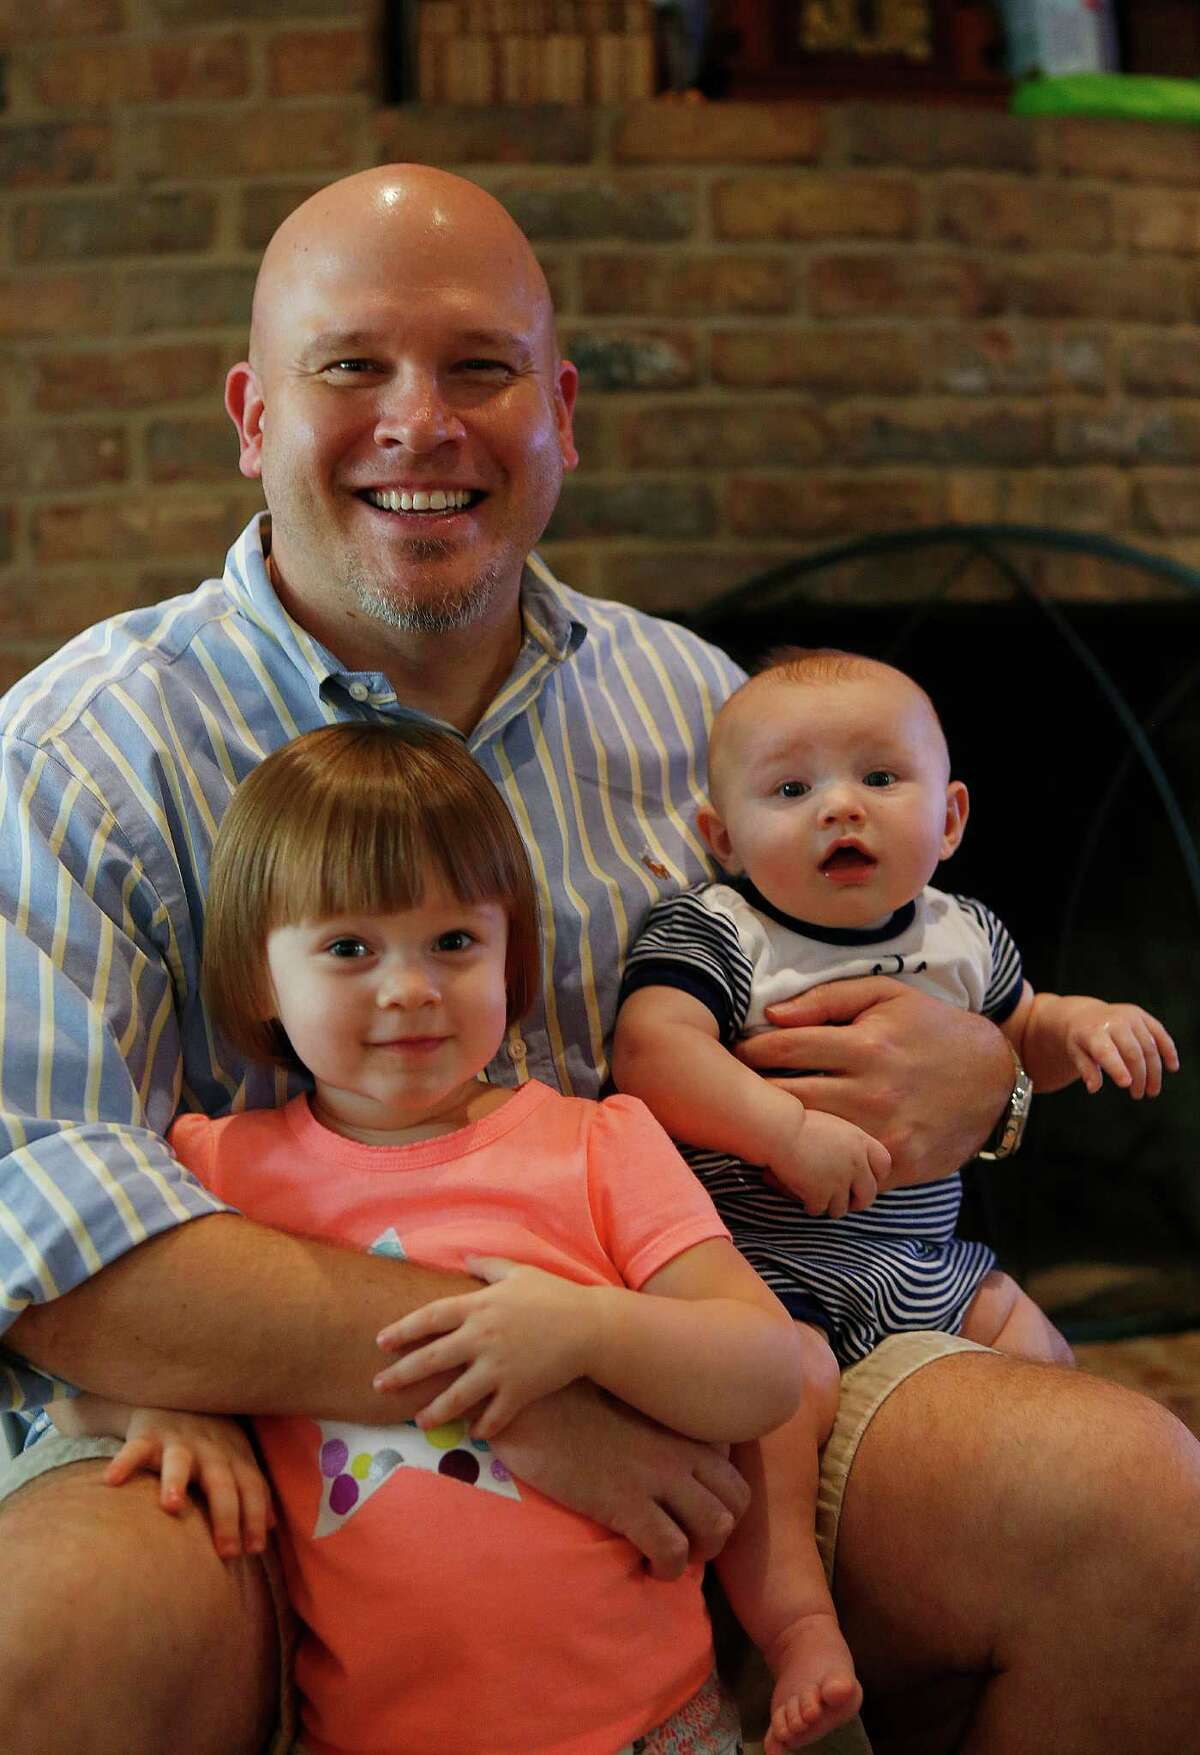 Jay Becraft decided to stay at home with his two children, Molly, 2, and Jay, Jr., 5-months, while his wife Elaine returned to work, Tuesday, Oct. 20, 2015, in Houston.